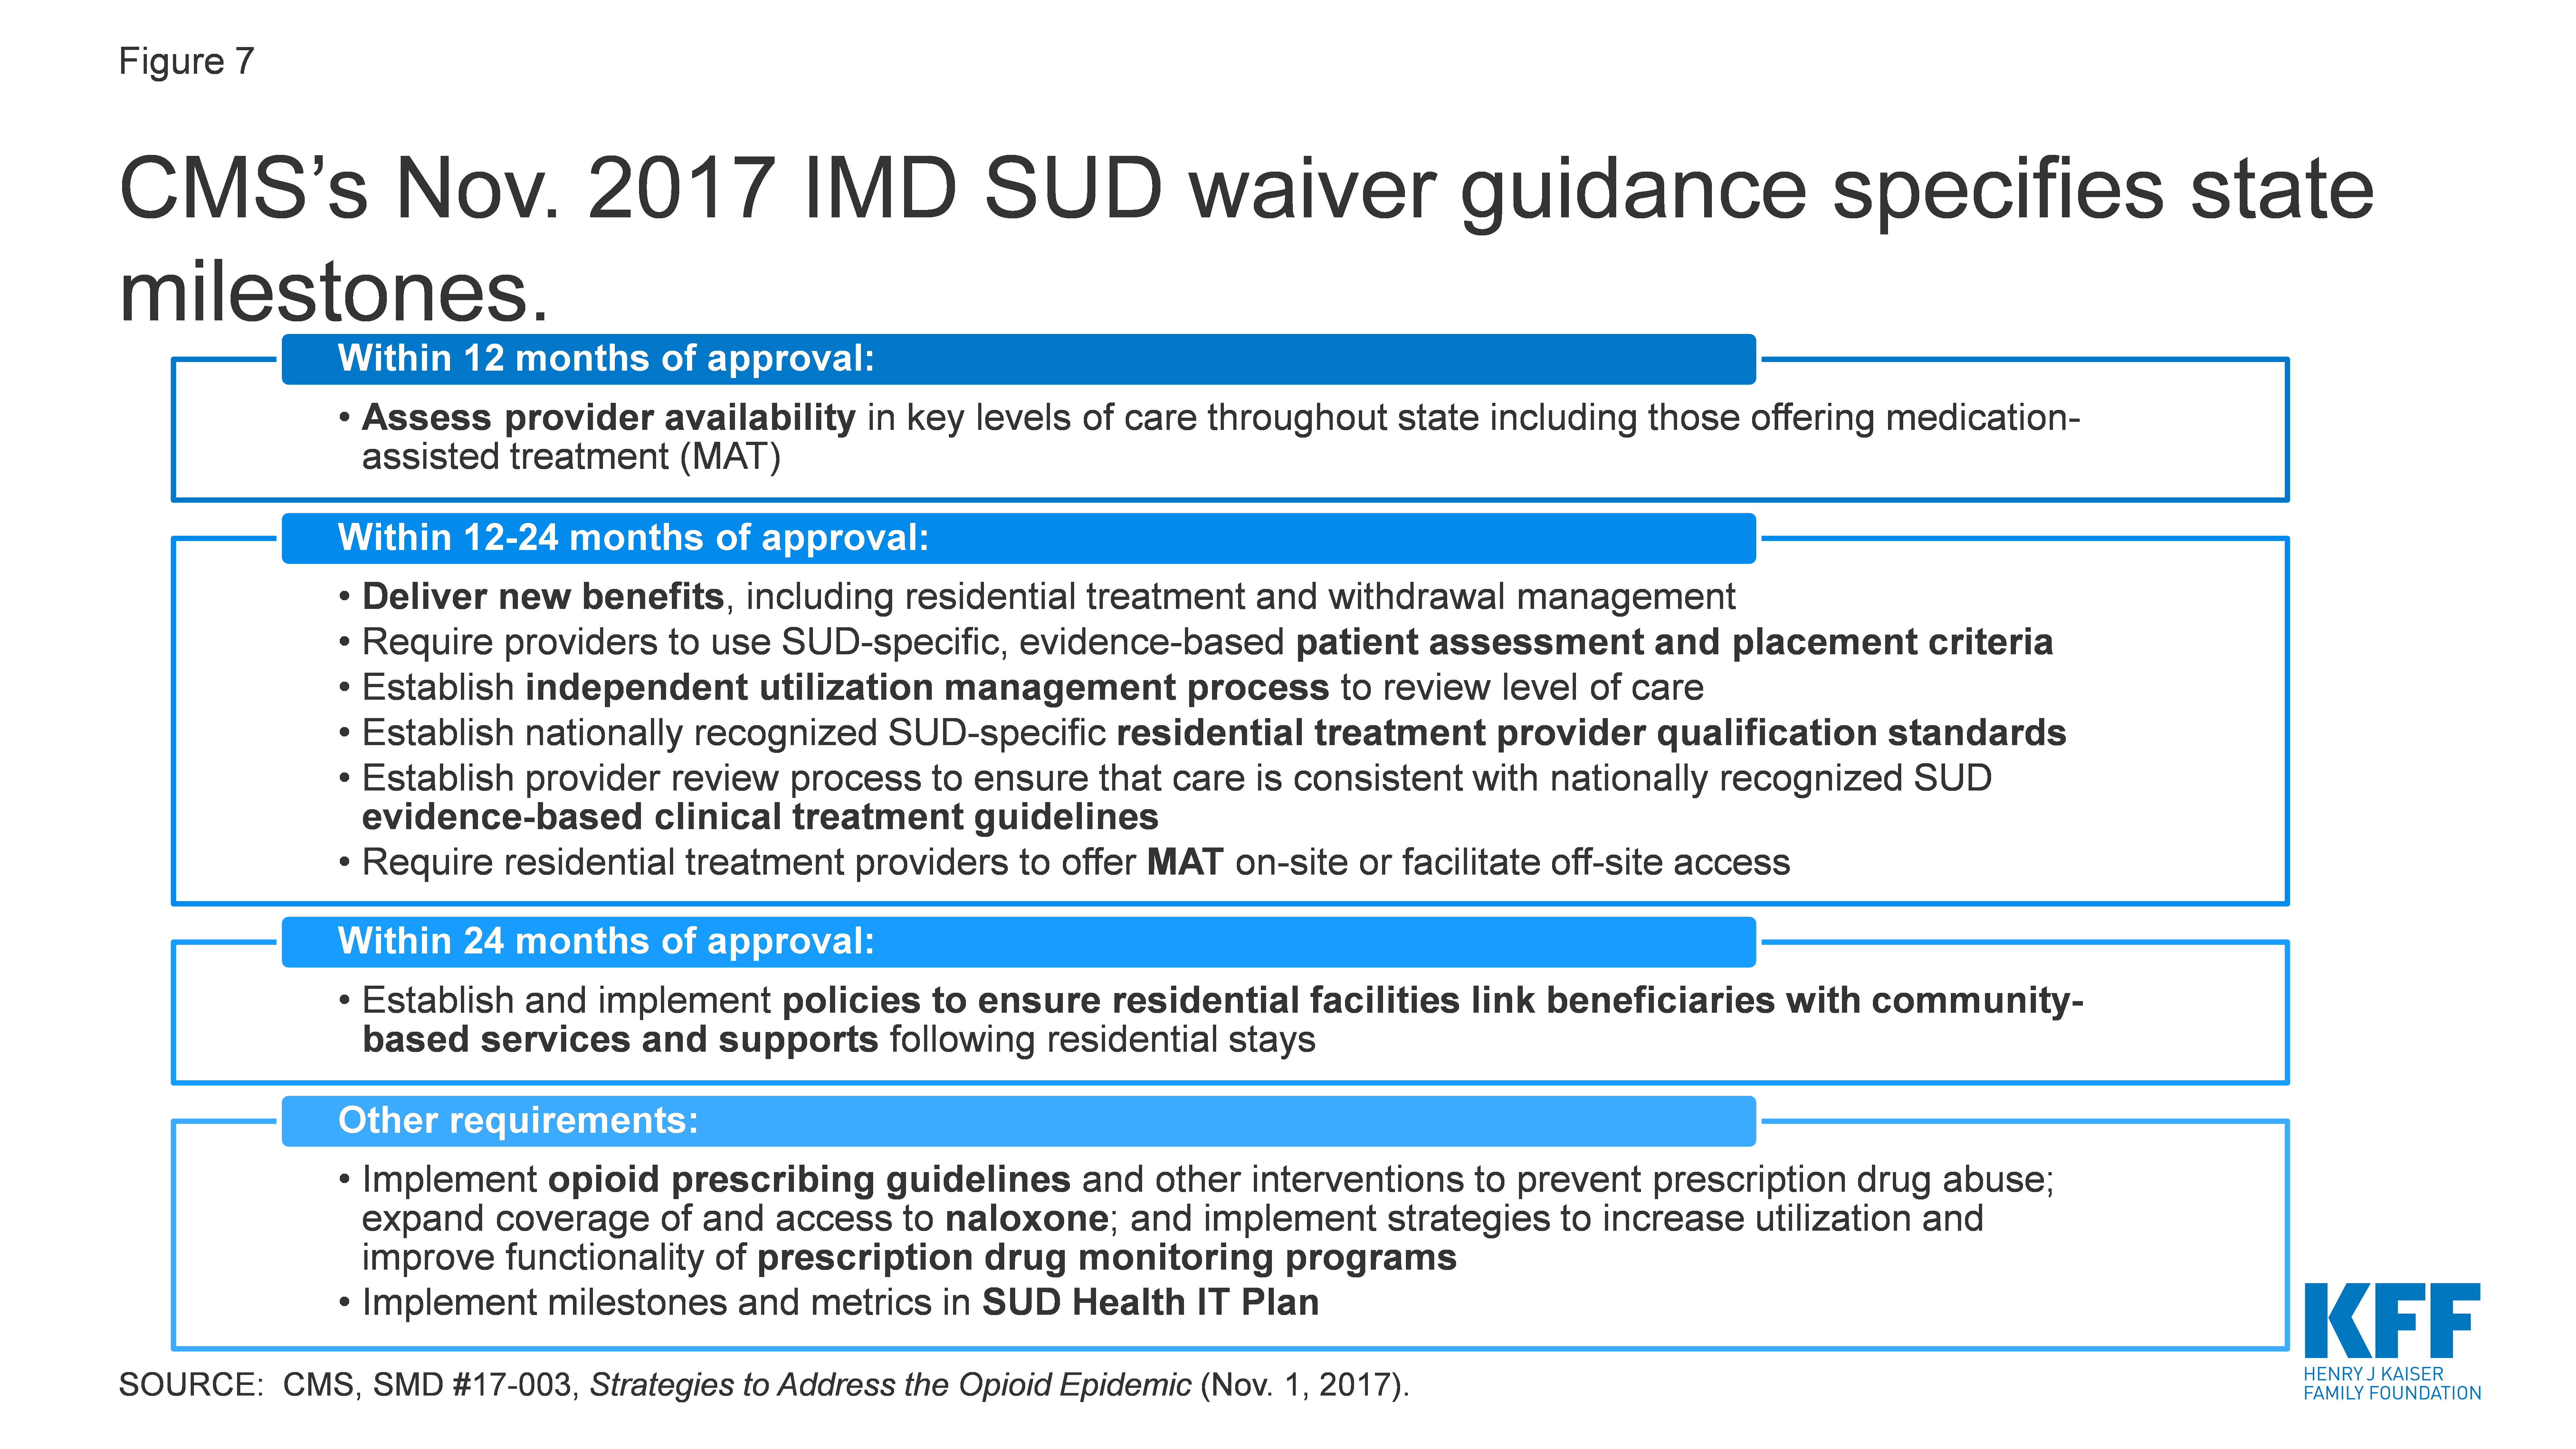 CMS's Nov. 2017 IMD SUD waiver guidance specifies state milestones